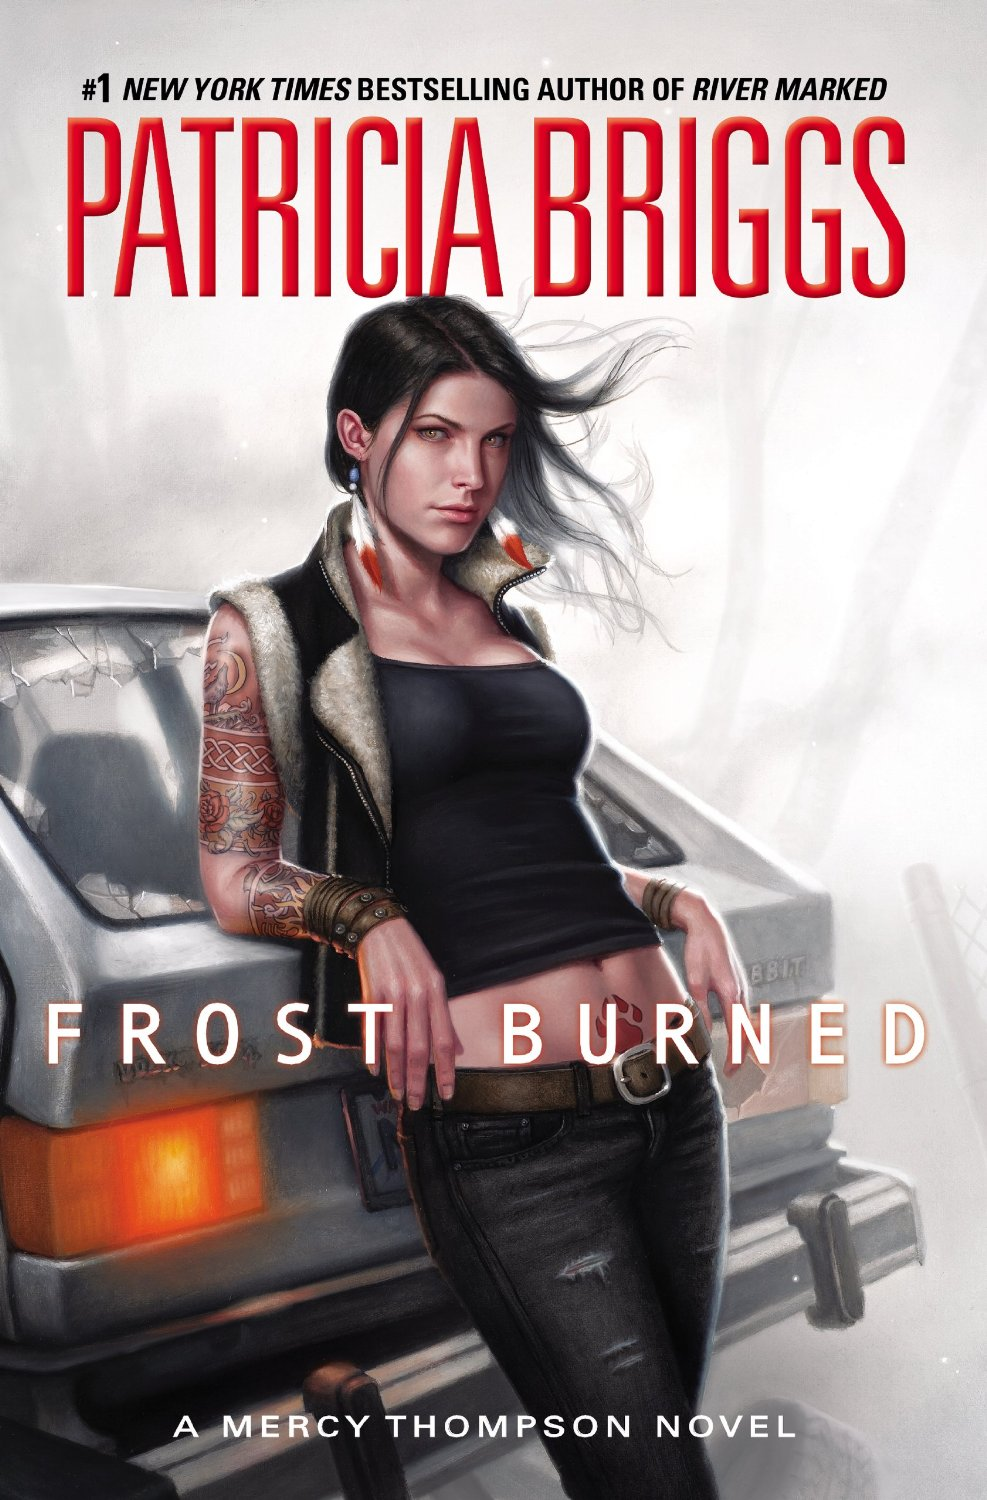 Frost Burned, by Patricia Briggs